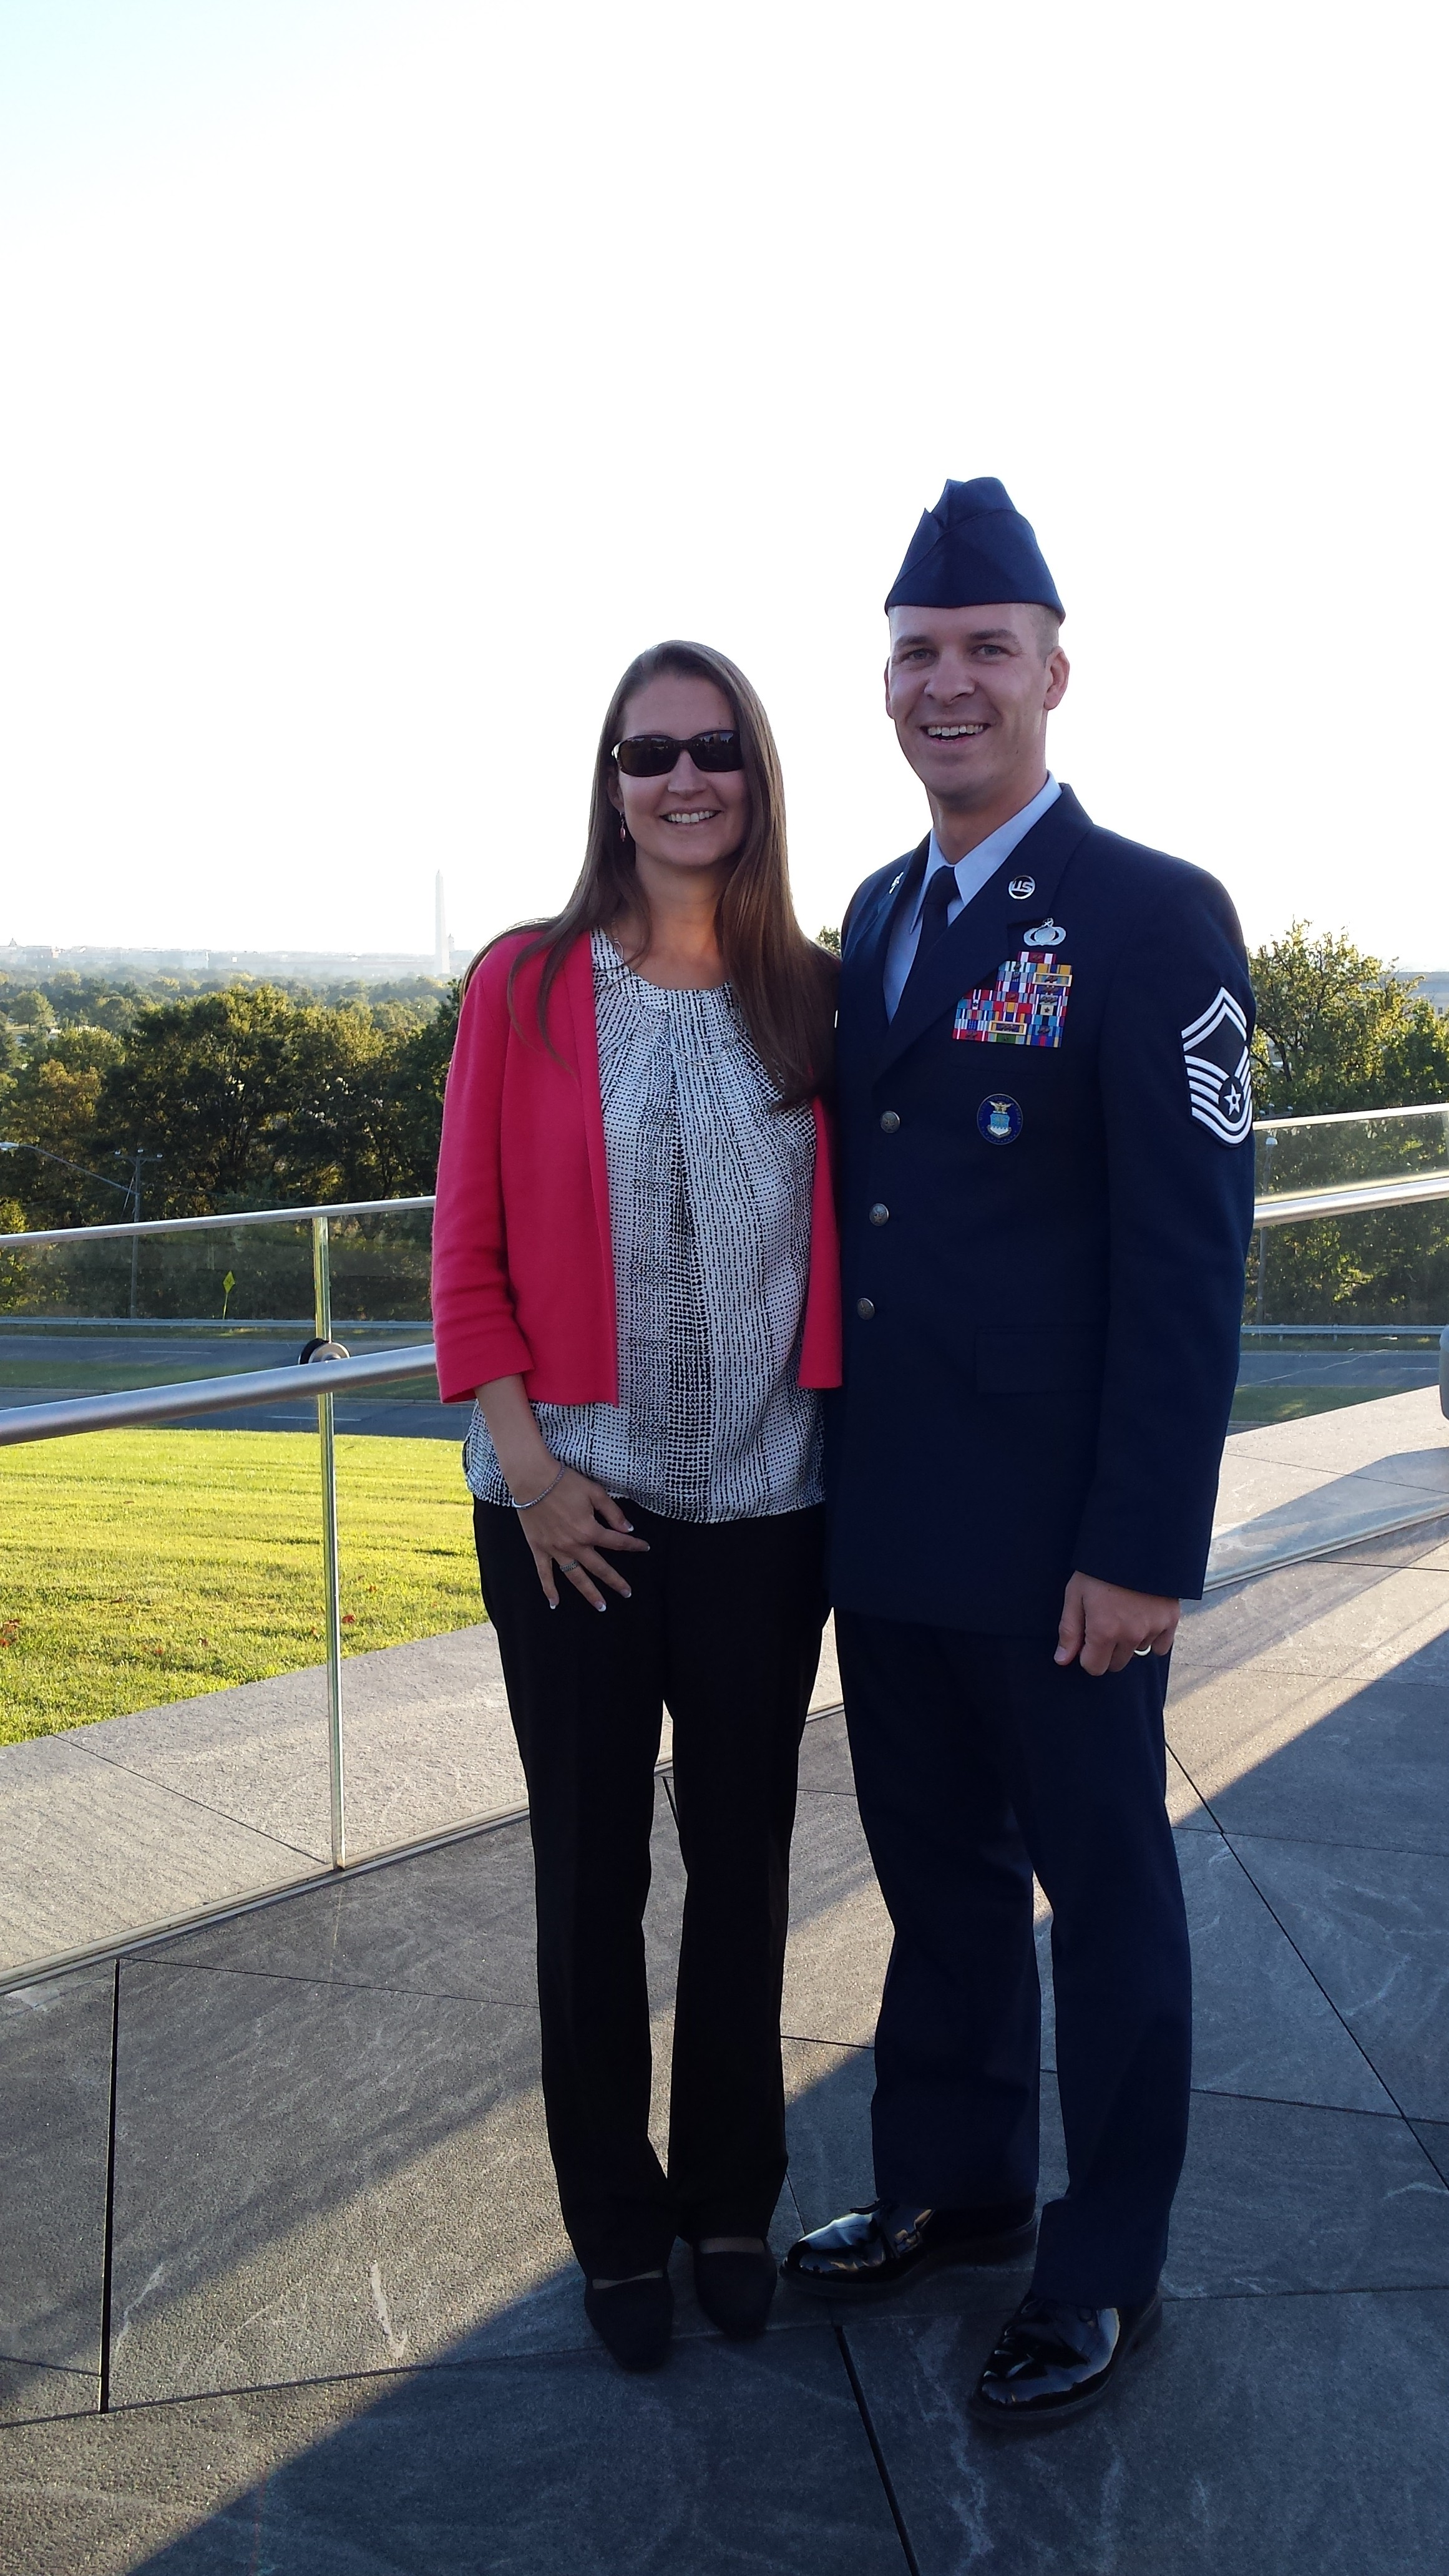 September, 2014 - Air Force Memorial, Washington, DC